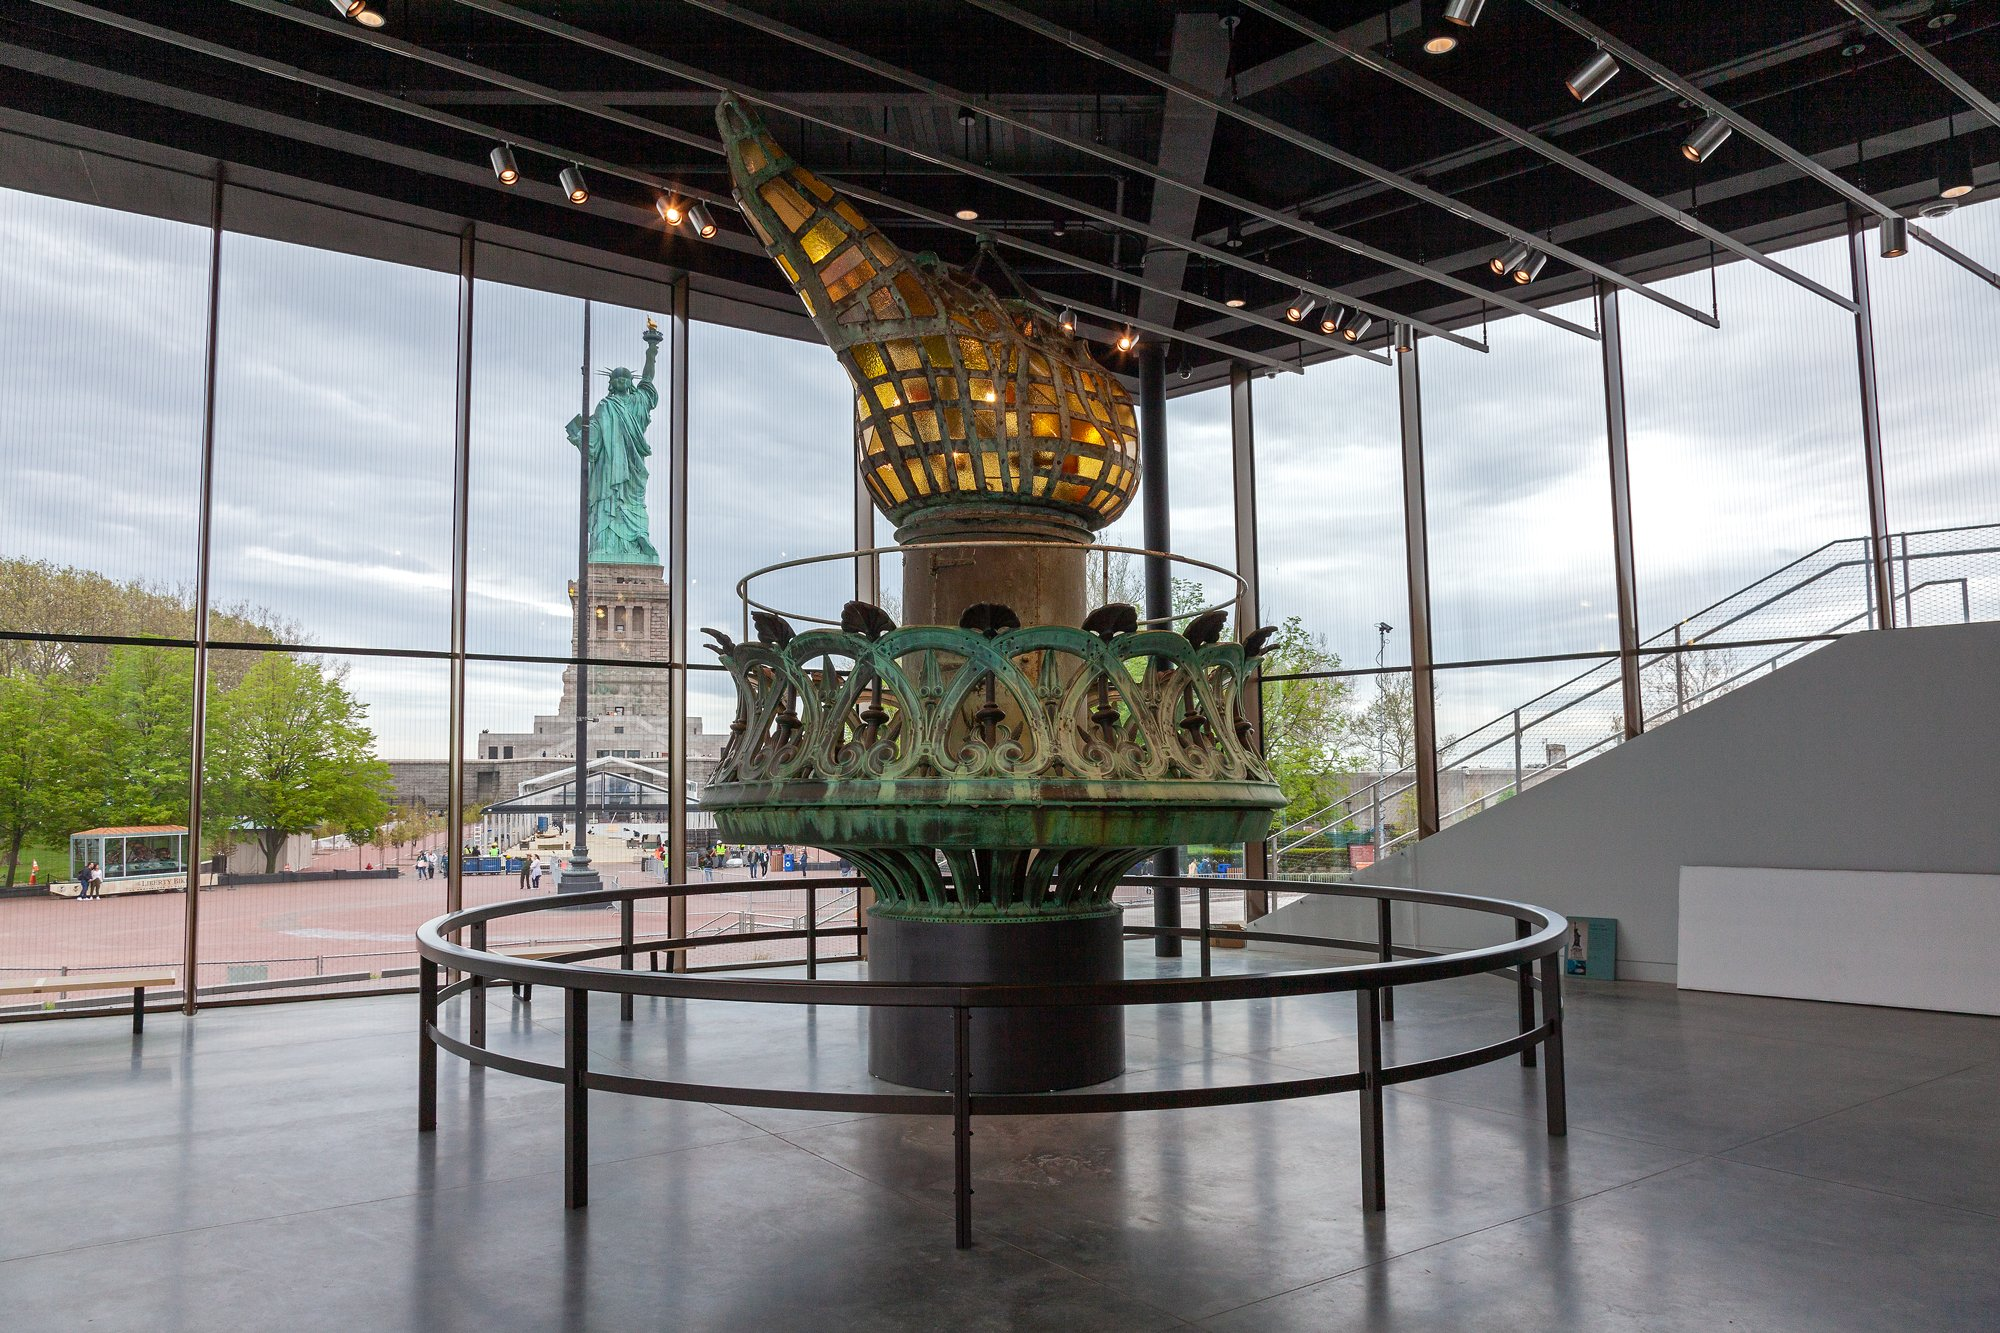 See Inside The Statue Of Liberty S New Museum Ahead Of This Week S Opening 6sqft